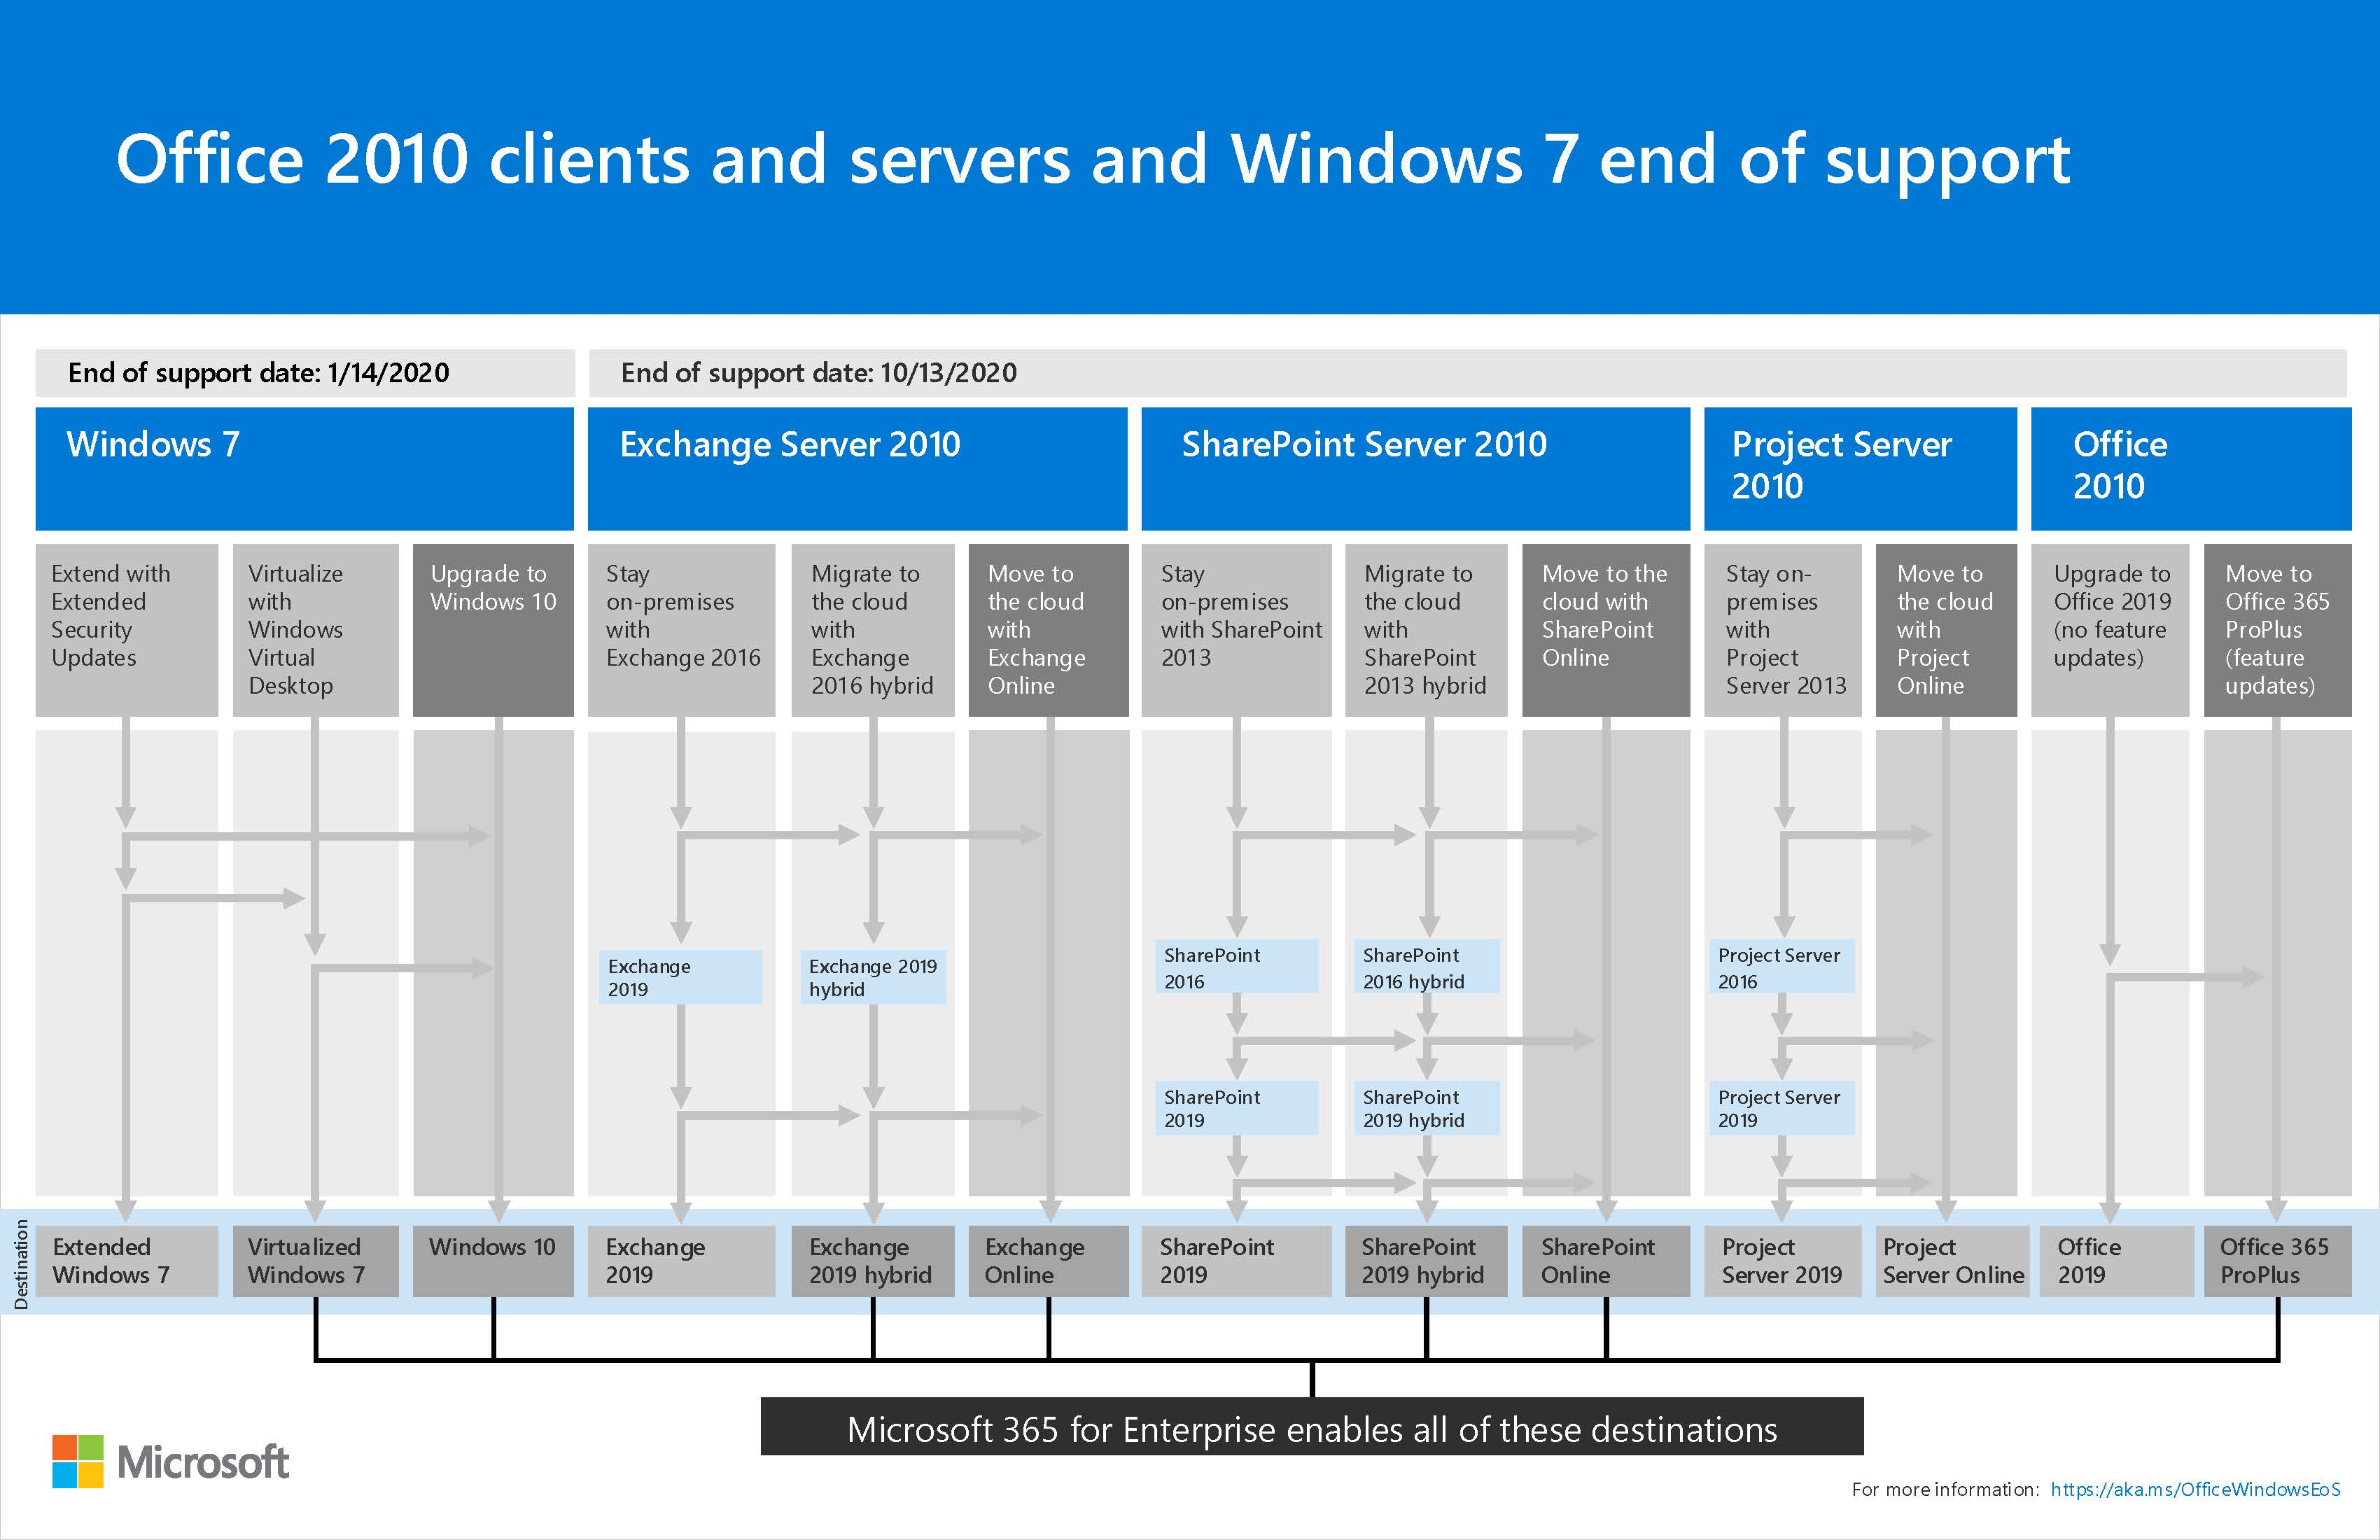 Microsoft beendet Support von Windows 7, Office 2010 und Exchange Server 2010.